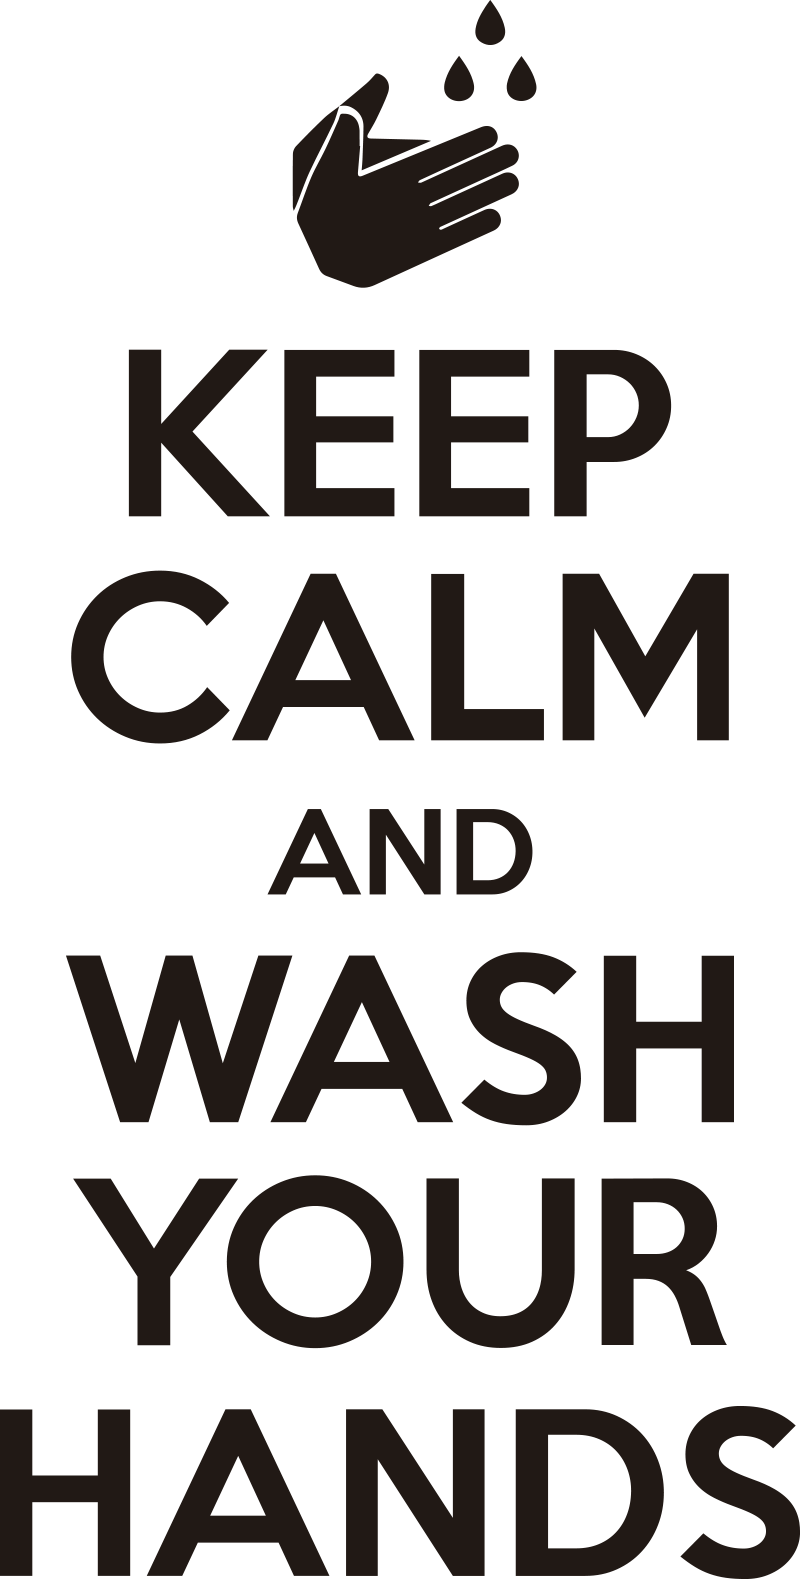 TenStickers. keep calm and wash your hands text wall decal. keep calm and wash your hands text bathroom sticker design for your bathroom and toilet. This simple and peaceful instruction design is easy to apply.